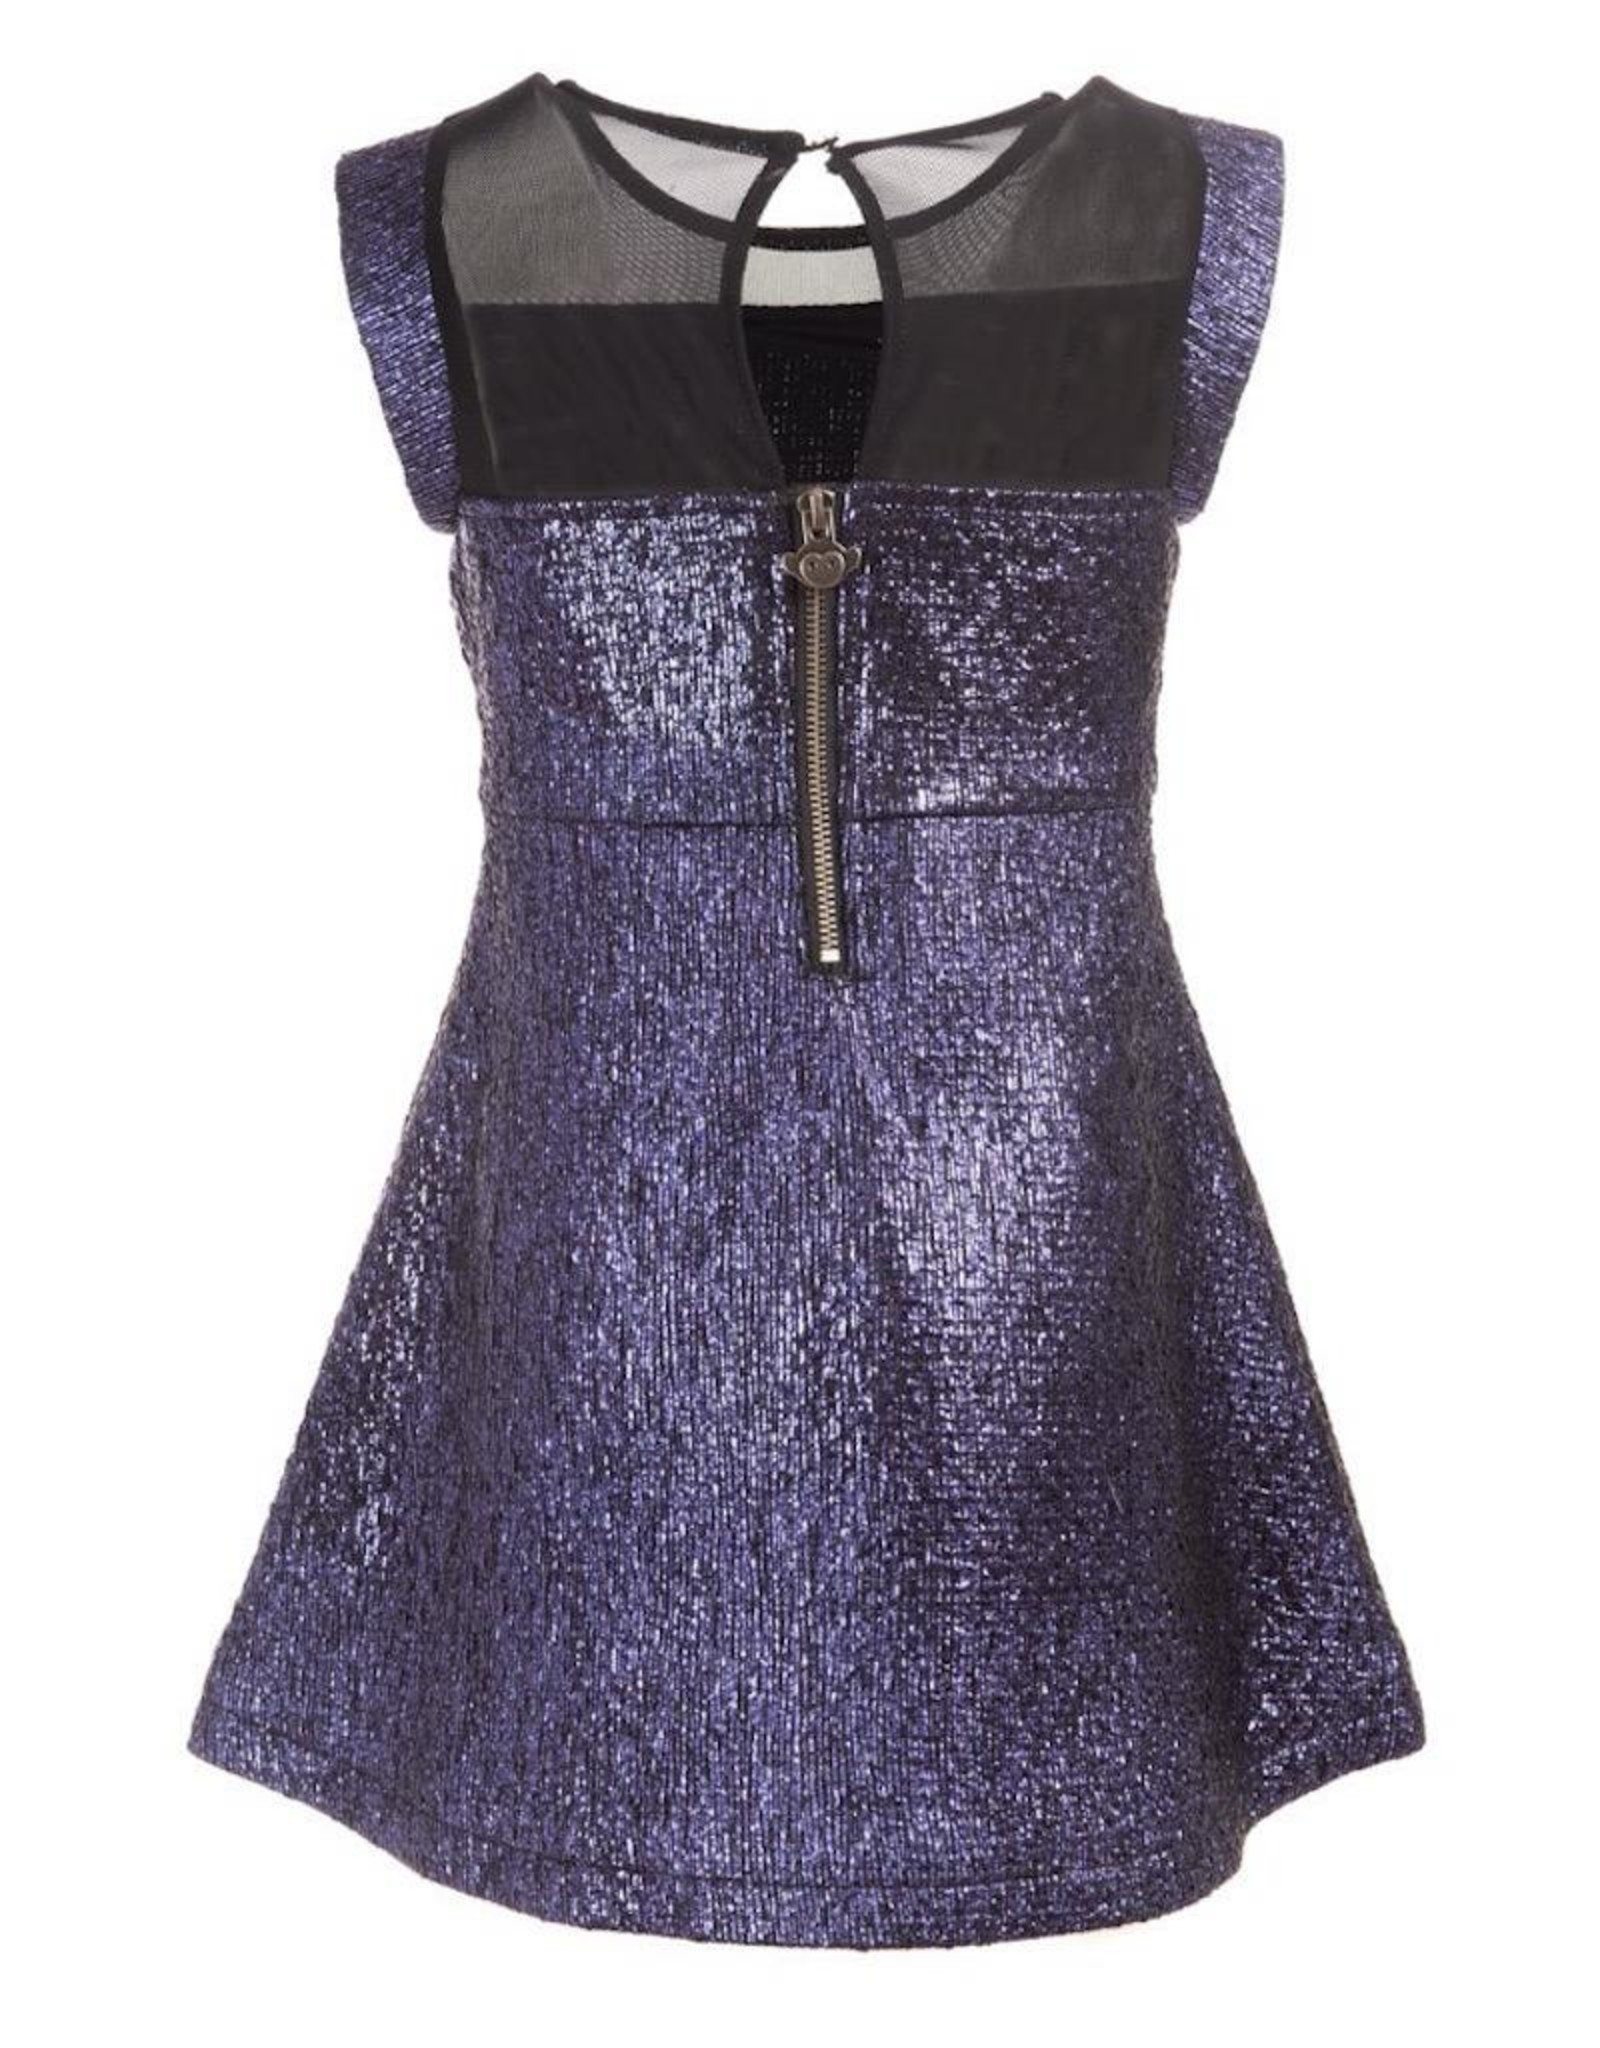 Appaman Mara Dress in Purple Rain